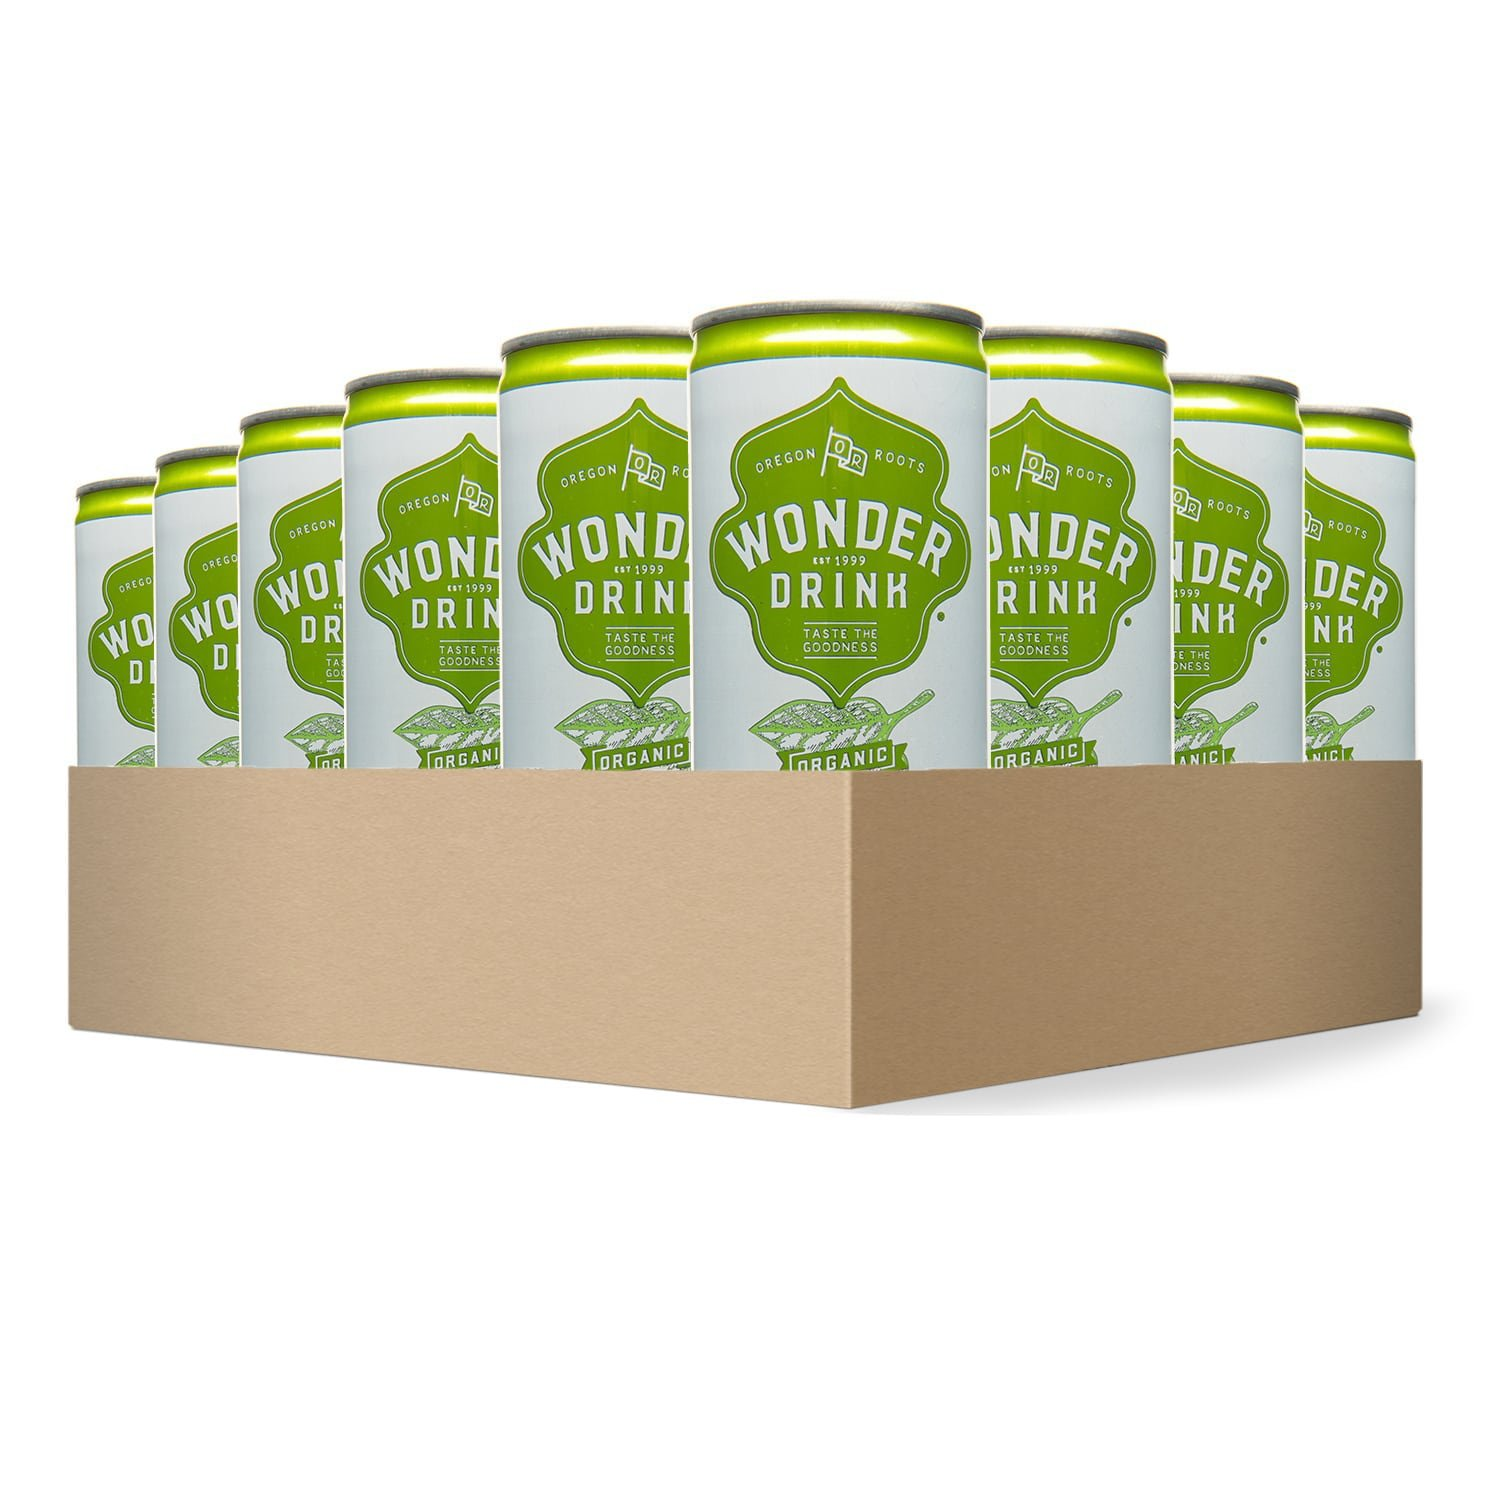 Wonder Drink Kombucha, Organic Asian Pear and Ginger Sparkling Fermented Tea, 8.4oz Can (Pack of 24) by Kombucha Wonder Drink